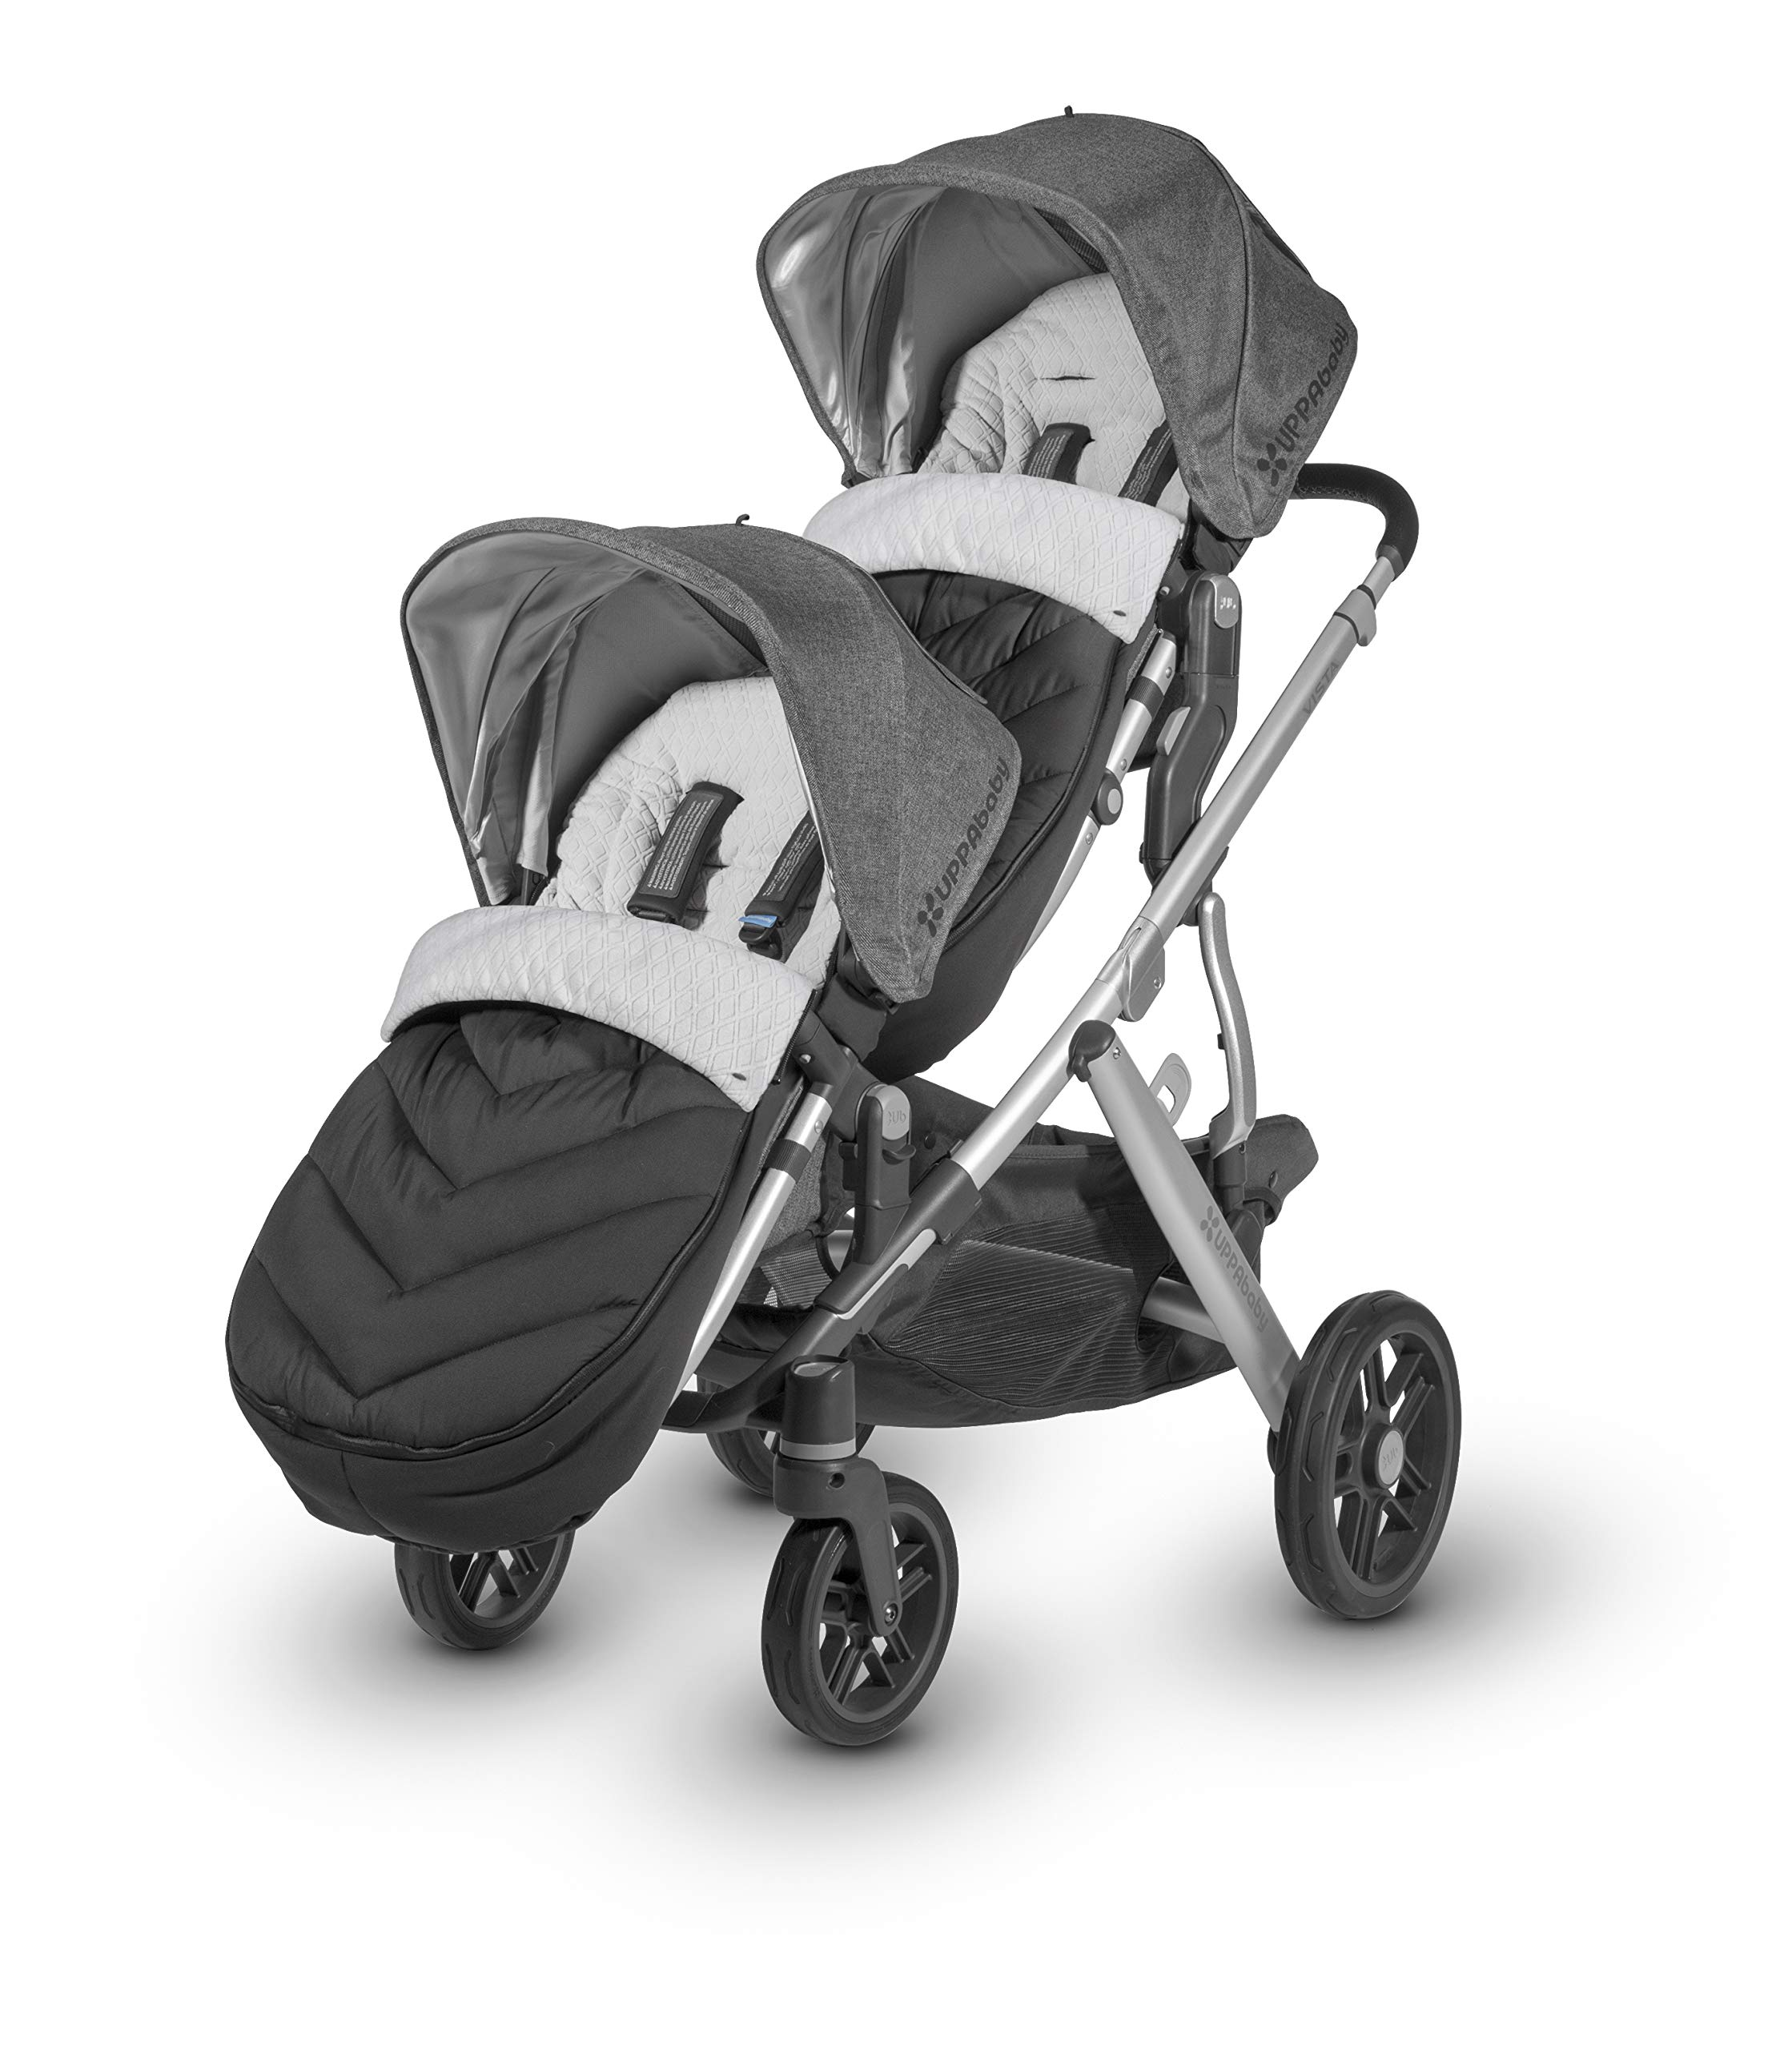 UPPAbaby RumbleSeat CozyGanoosh - JAKE (black) by UPPAbaby